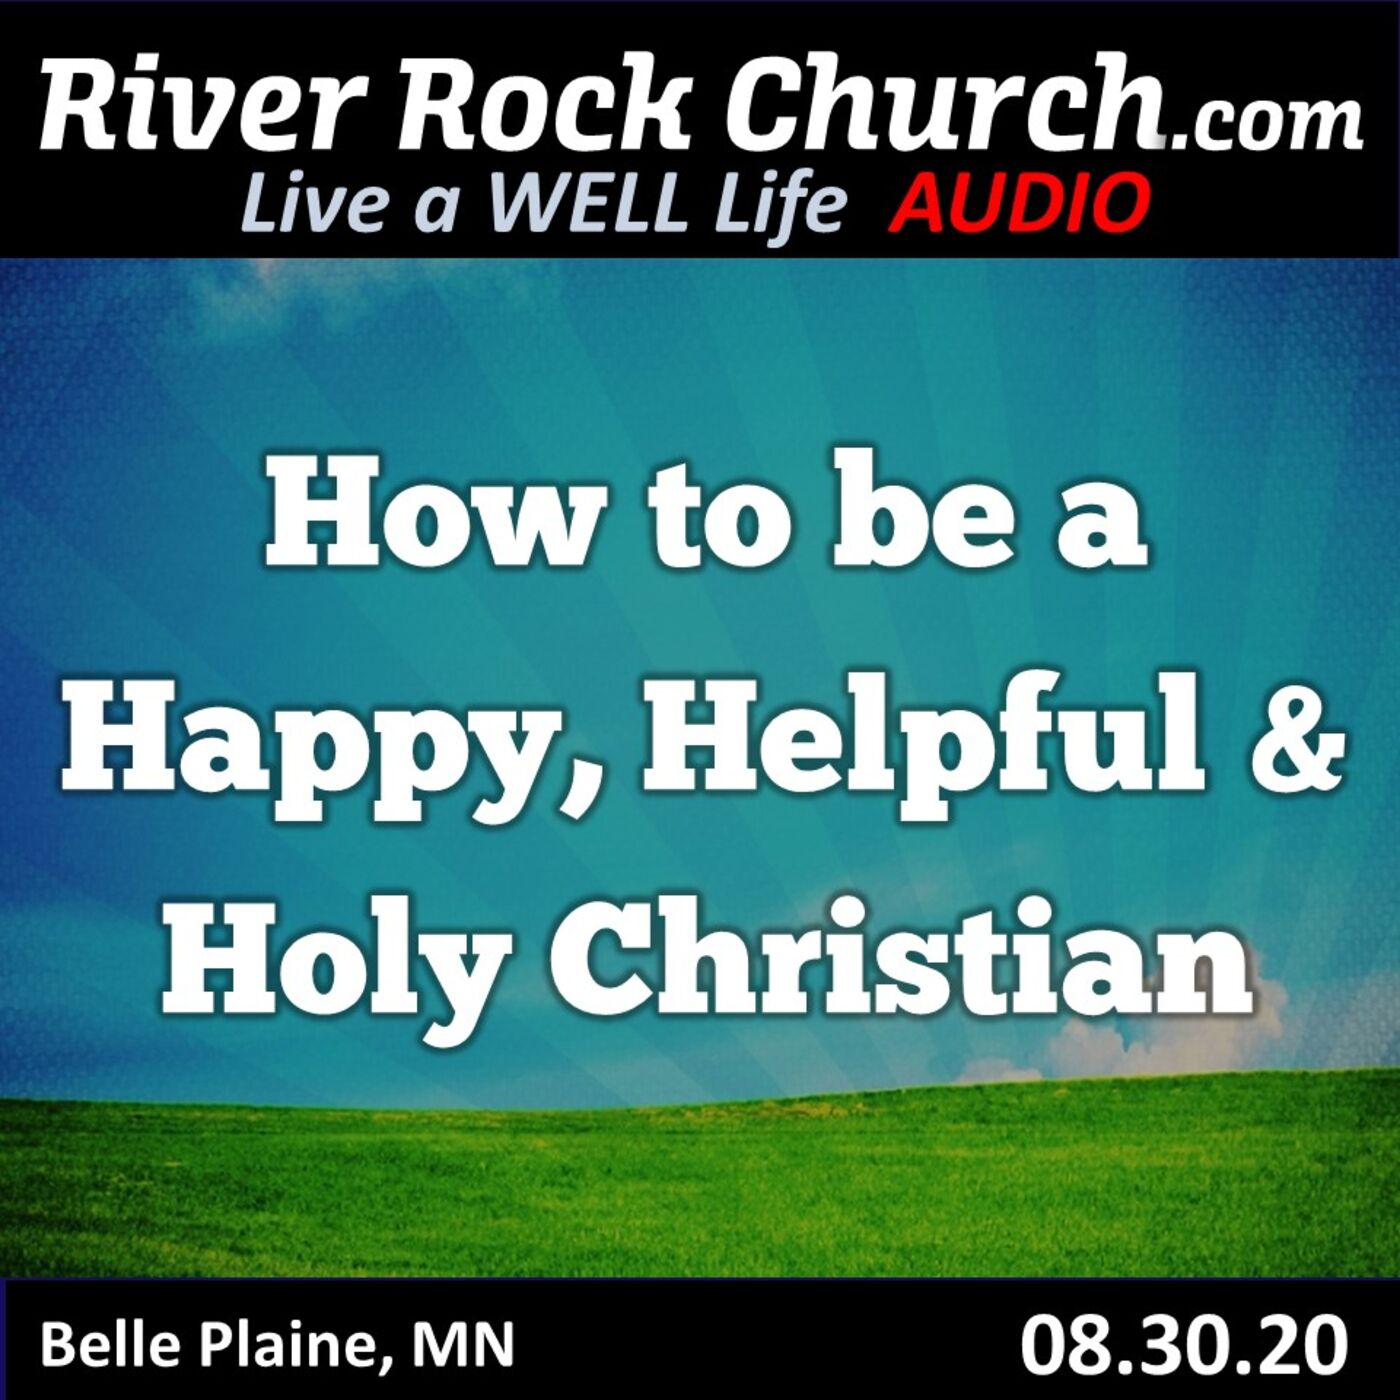 How to be a Happy, Helpful and Holy Christian